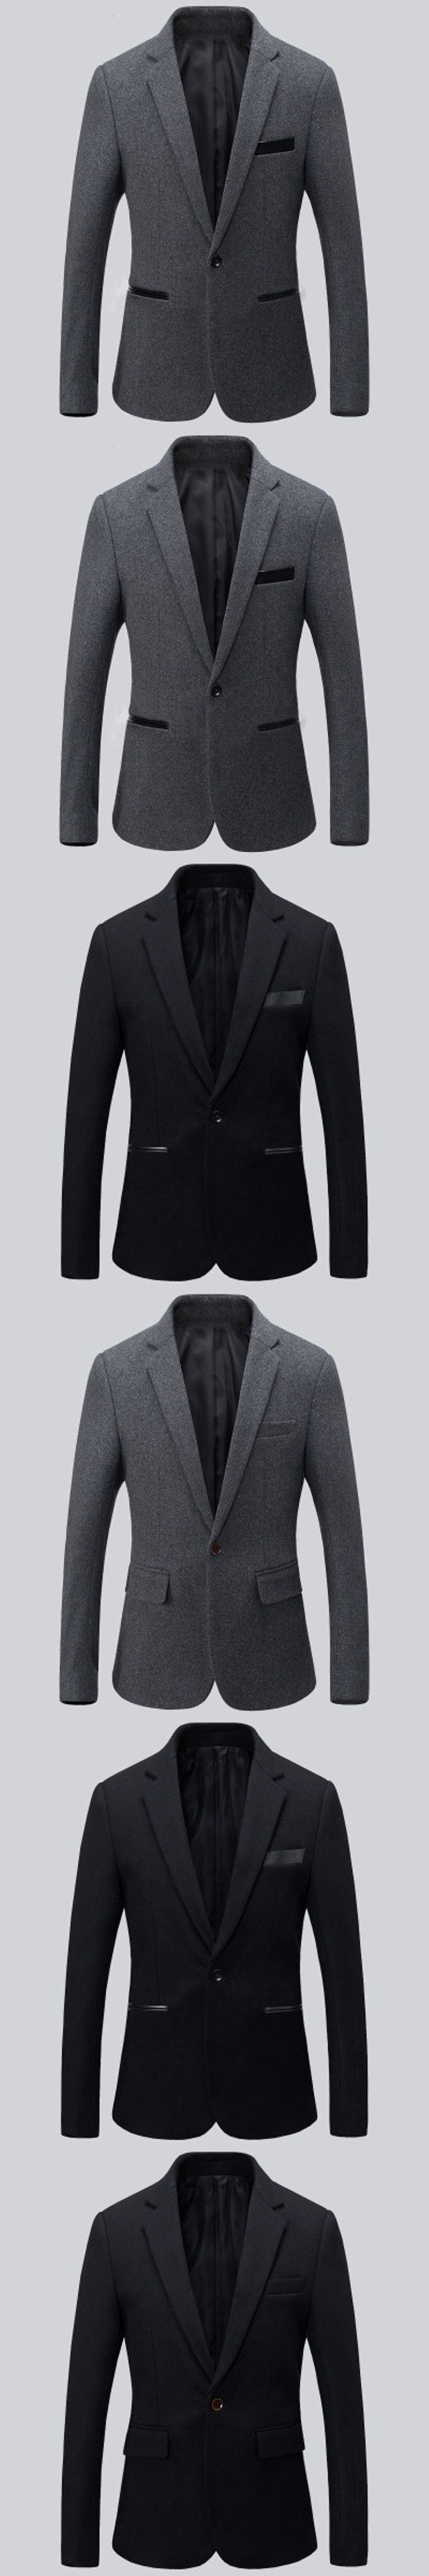 New arrival men suits jacket wool blended balck and grey wedding